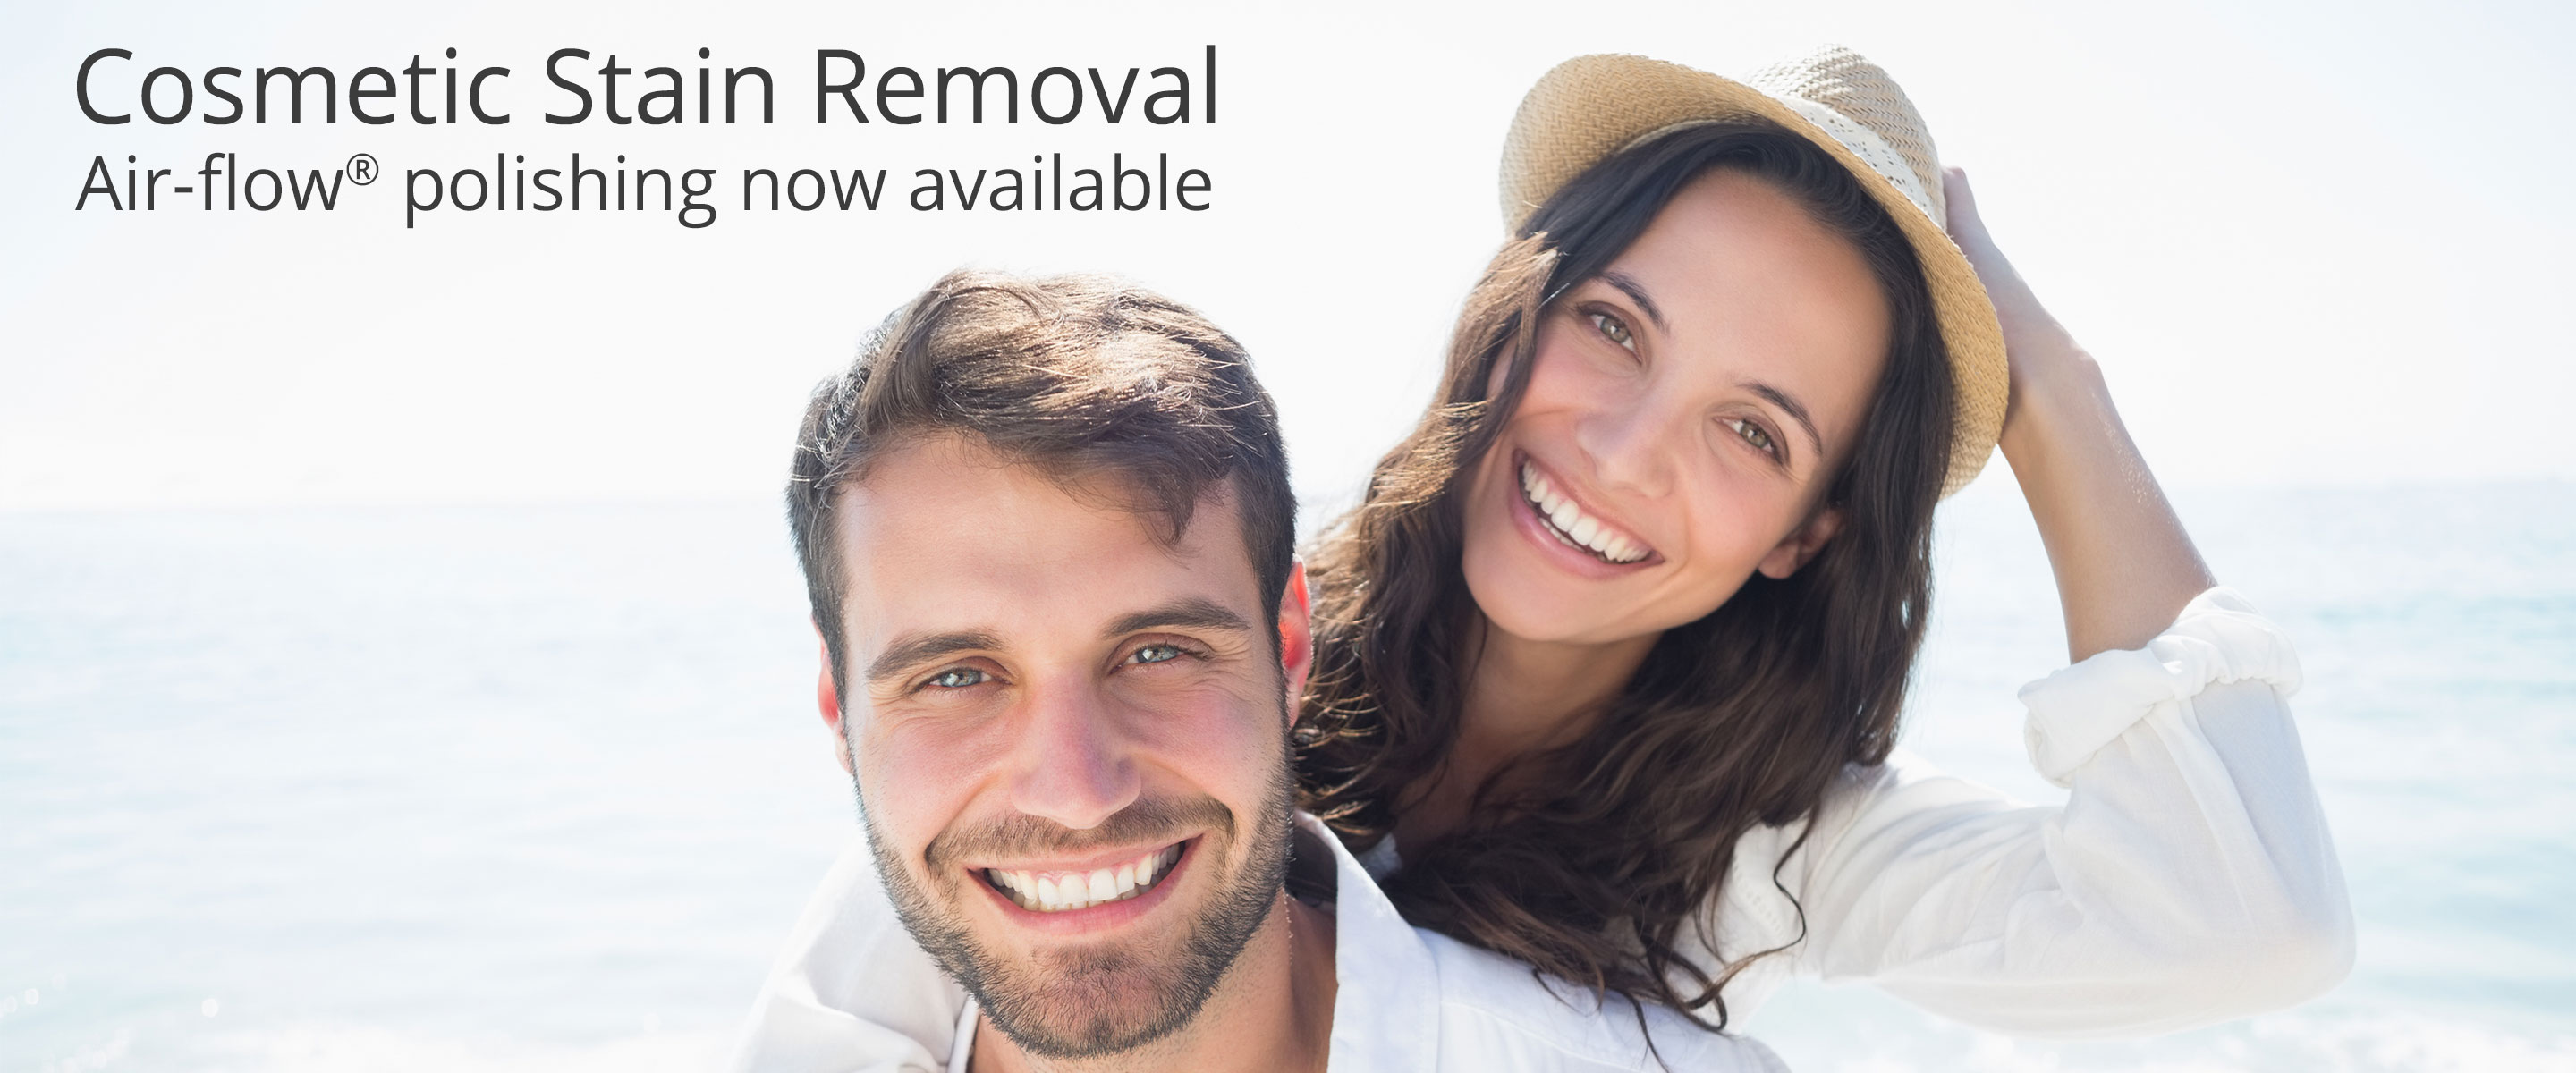 Cosmetic Stain Removal